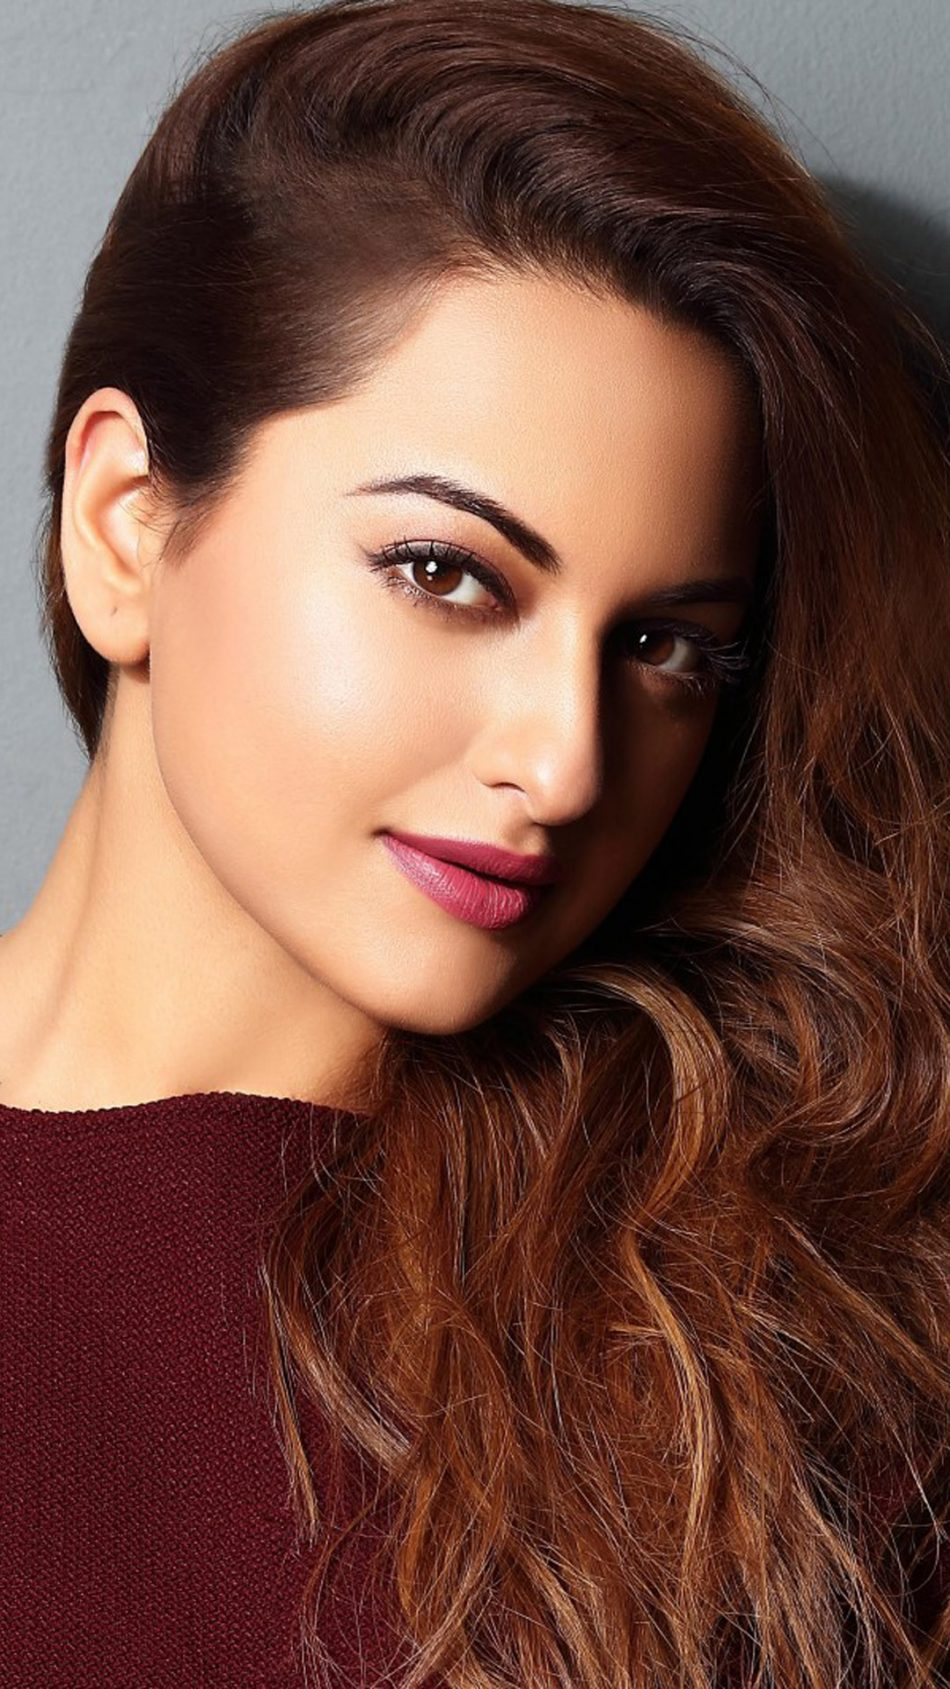 download sonakshi sinha gorgeous look free pure 4k ultra hd mobile